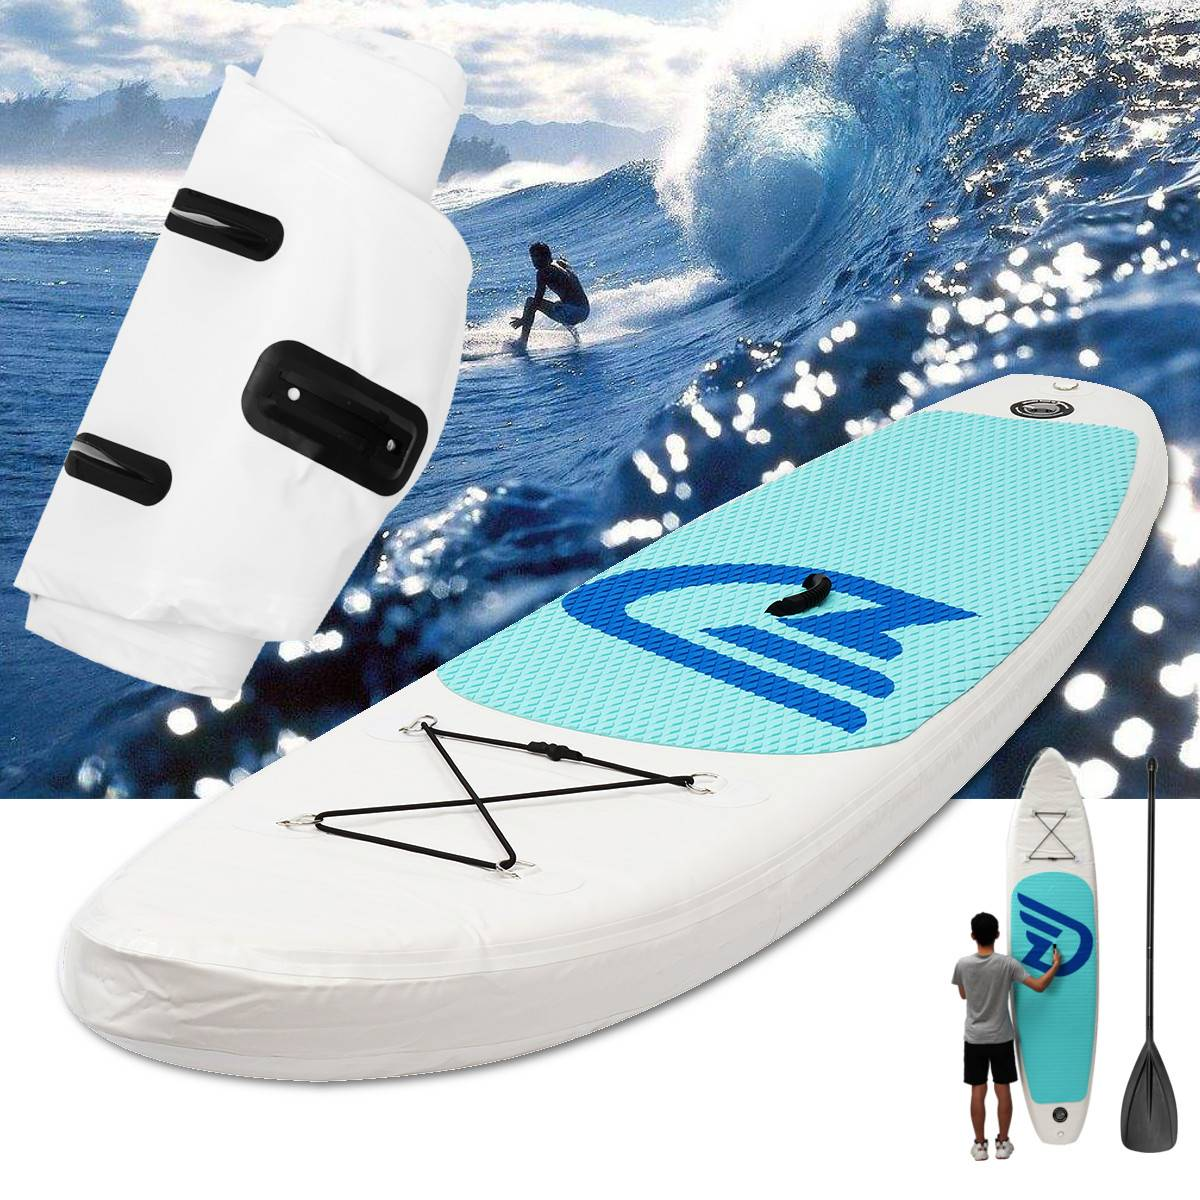 Inflatable Surfing Board 10ft Surf Paddle Board Stand Up Water Pump Foot Leash Beach Ocean Body Boarding Water Sports Supplies